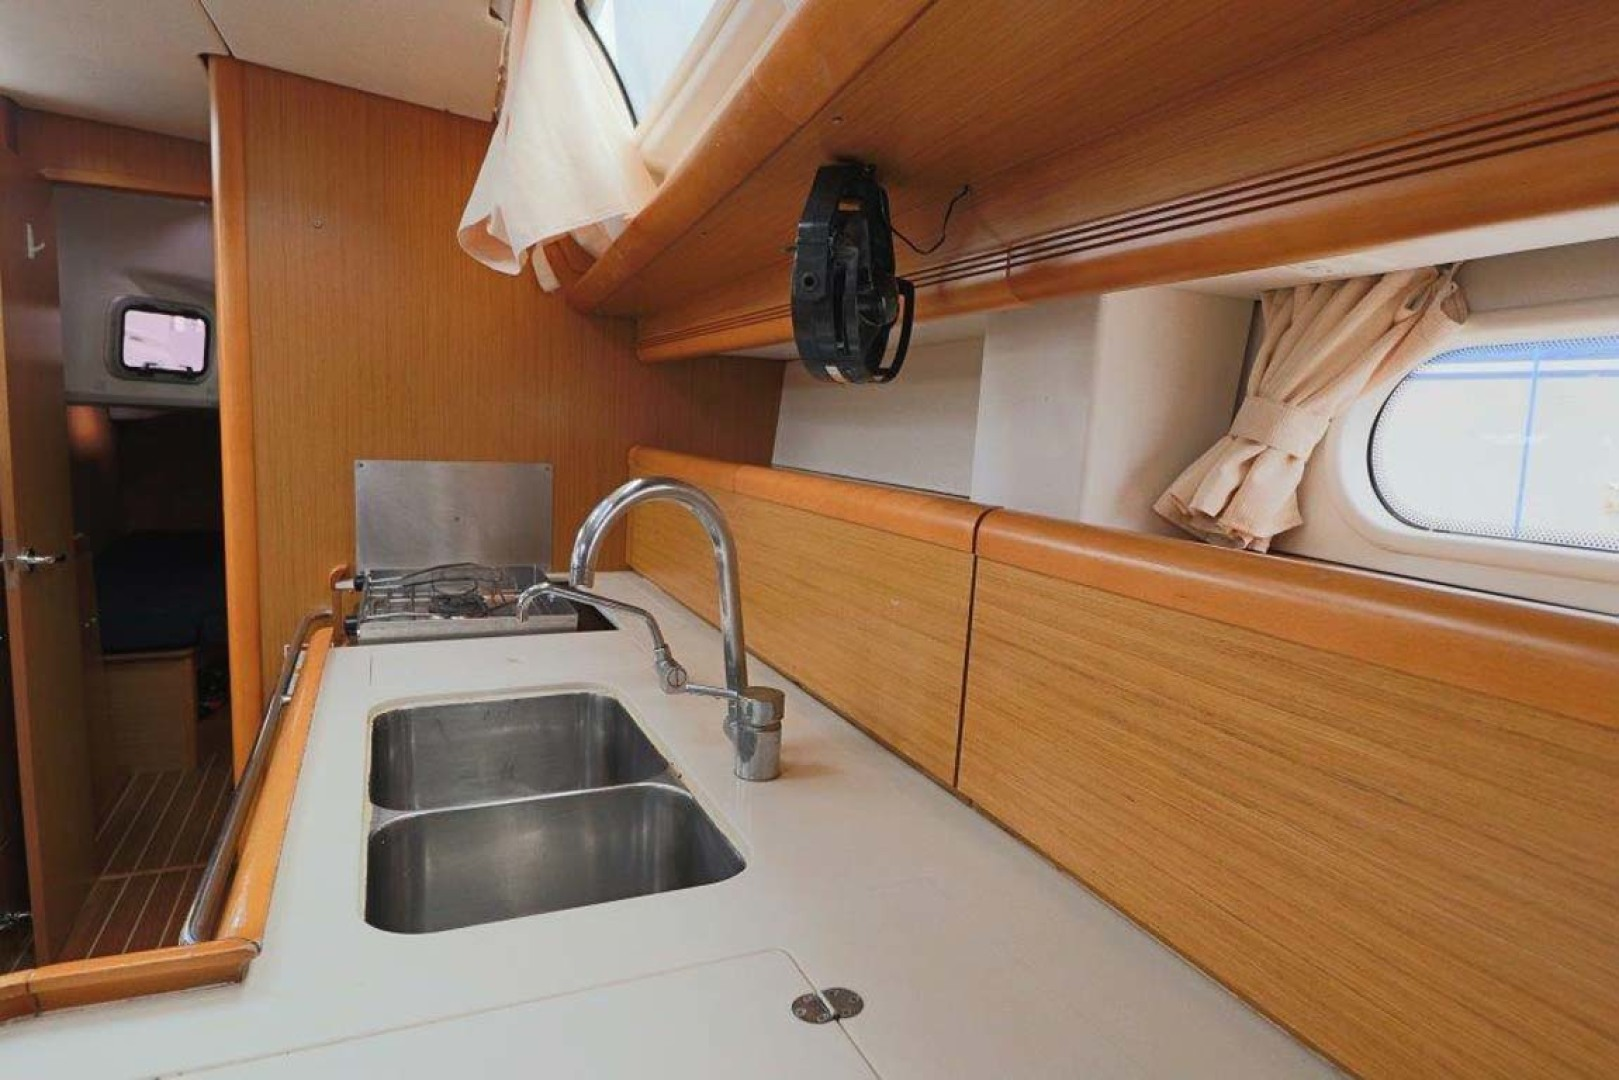 Jeanneau-Sun Odyssey 44i 2010-Intrigue Poulsbo-Washington-United States-Galley-1153324 | Thumbnail